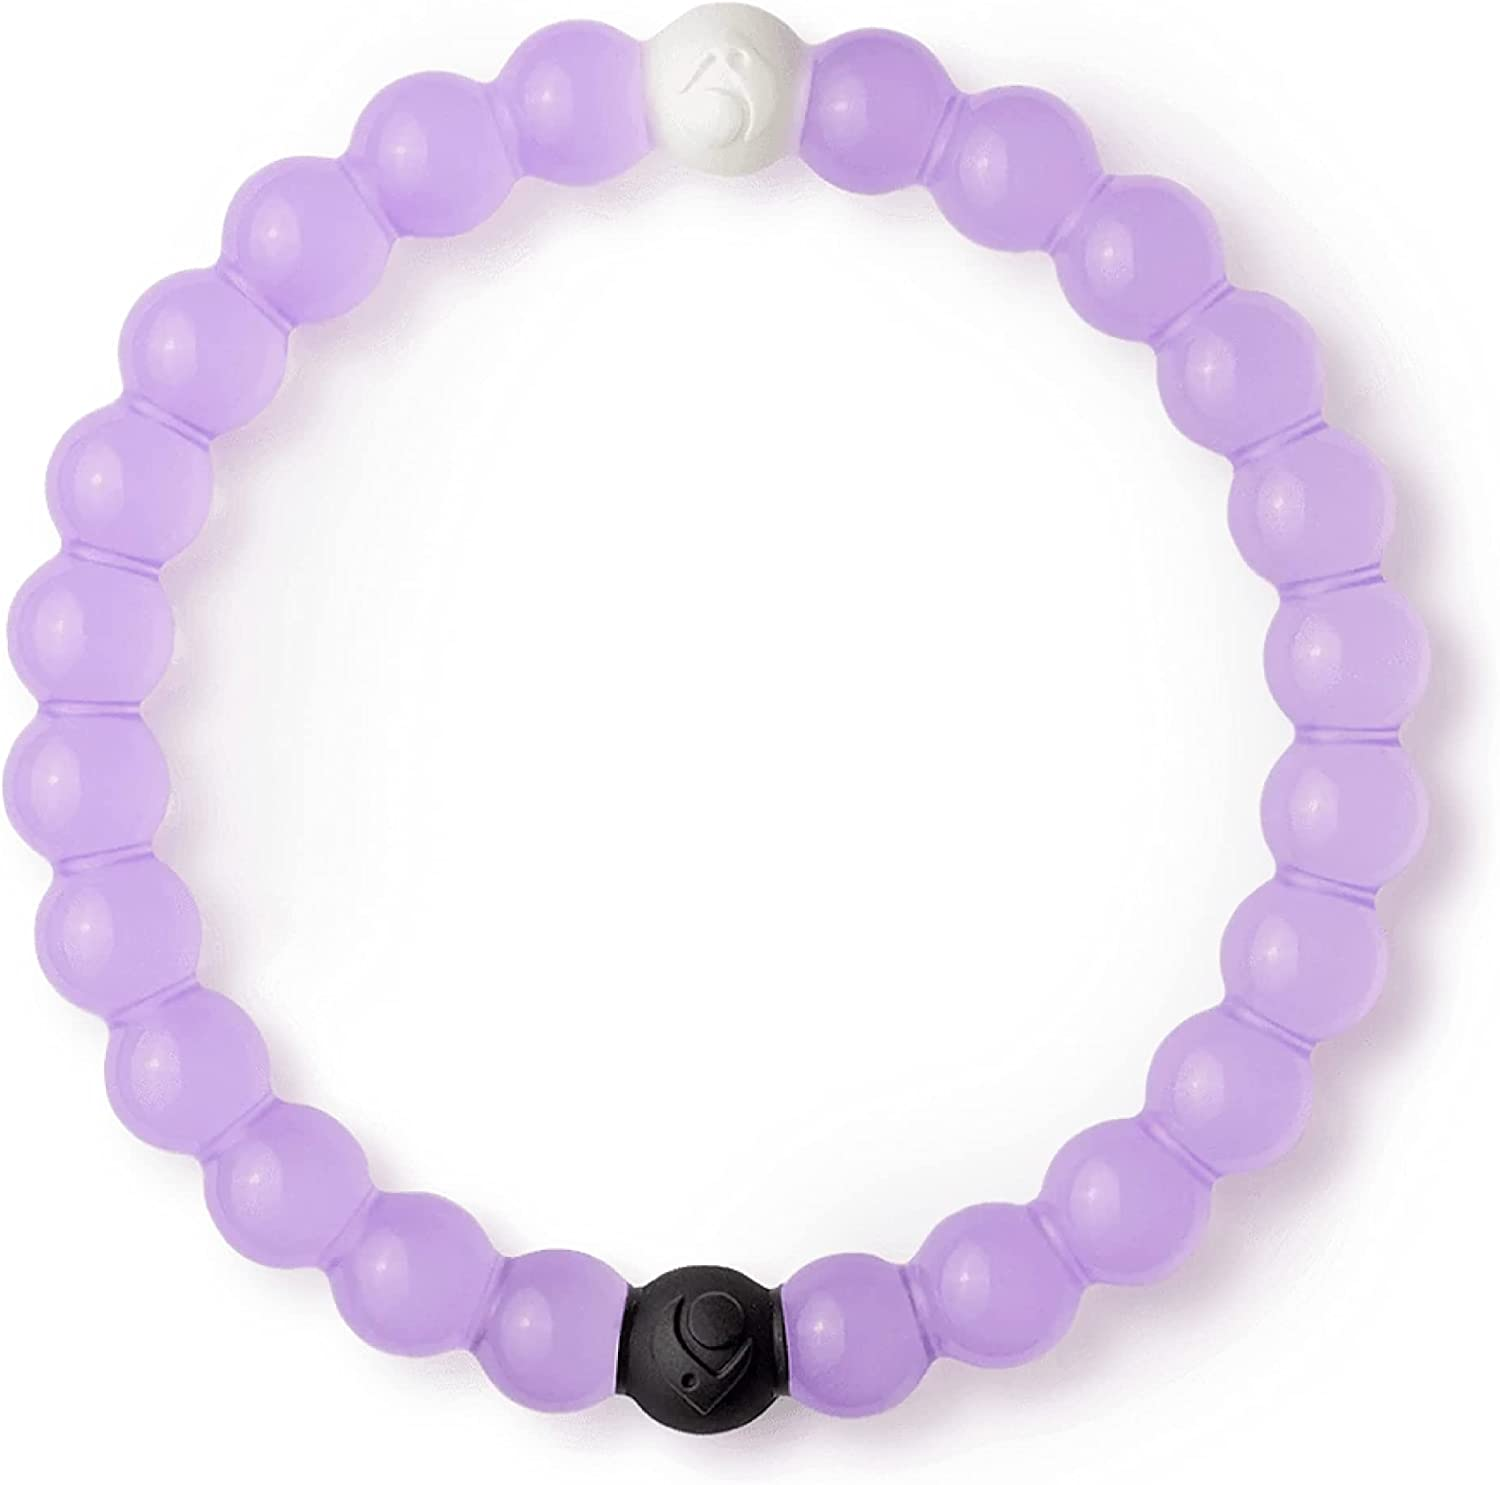 Lokai Alzheimer's Discount mail order Cause Special sale item Bracelet Collection